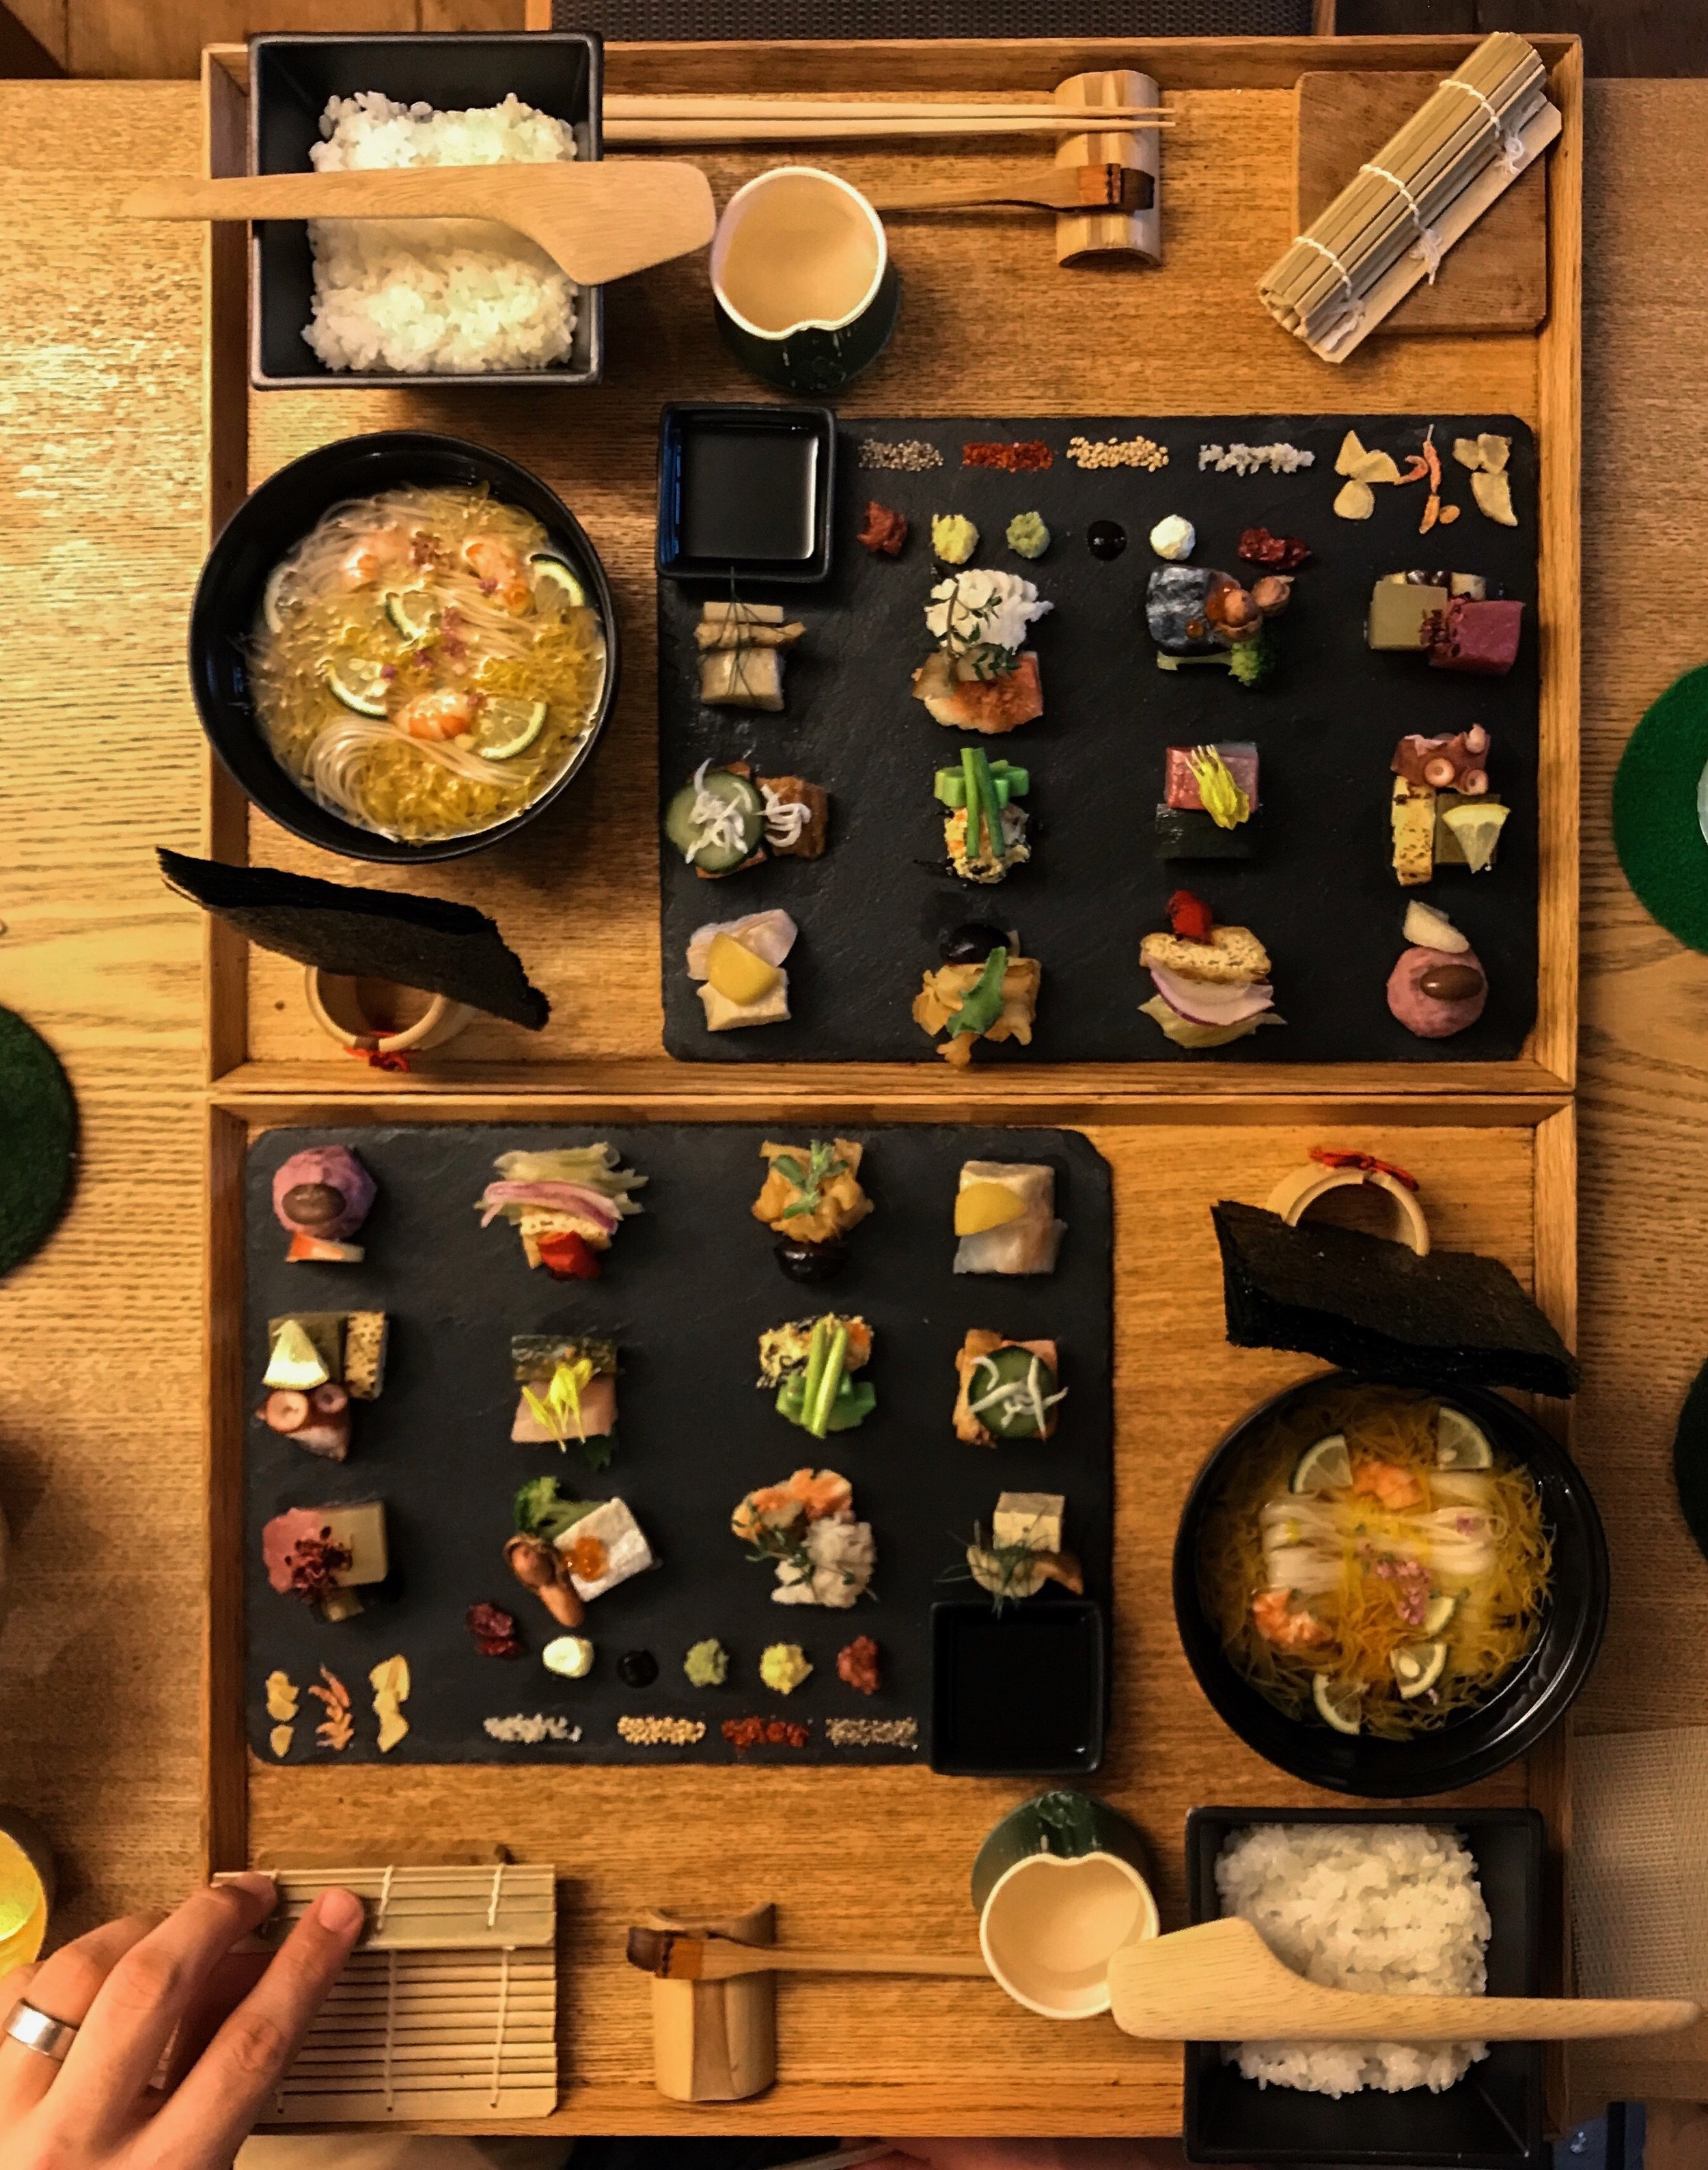 Awomb best food restaurants to eat in kyoto japan